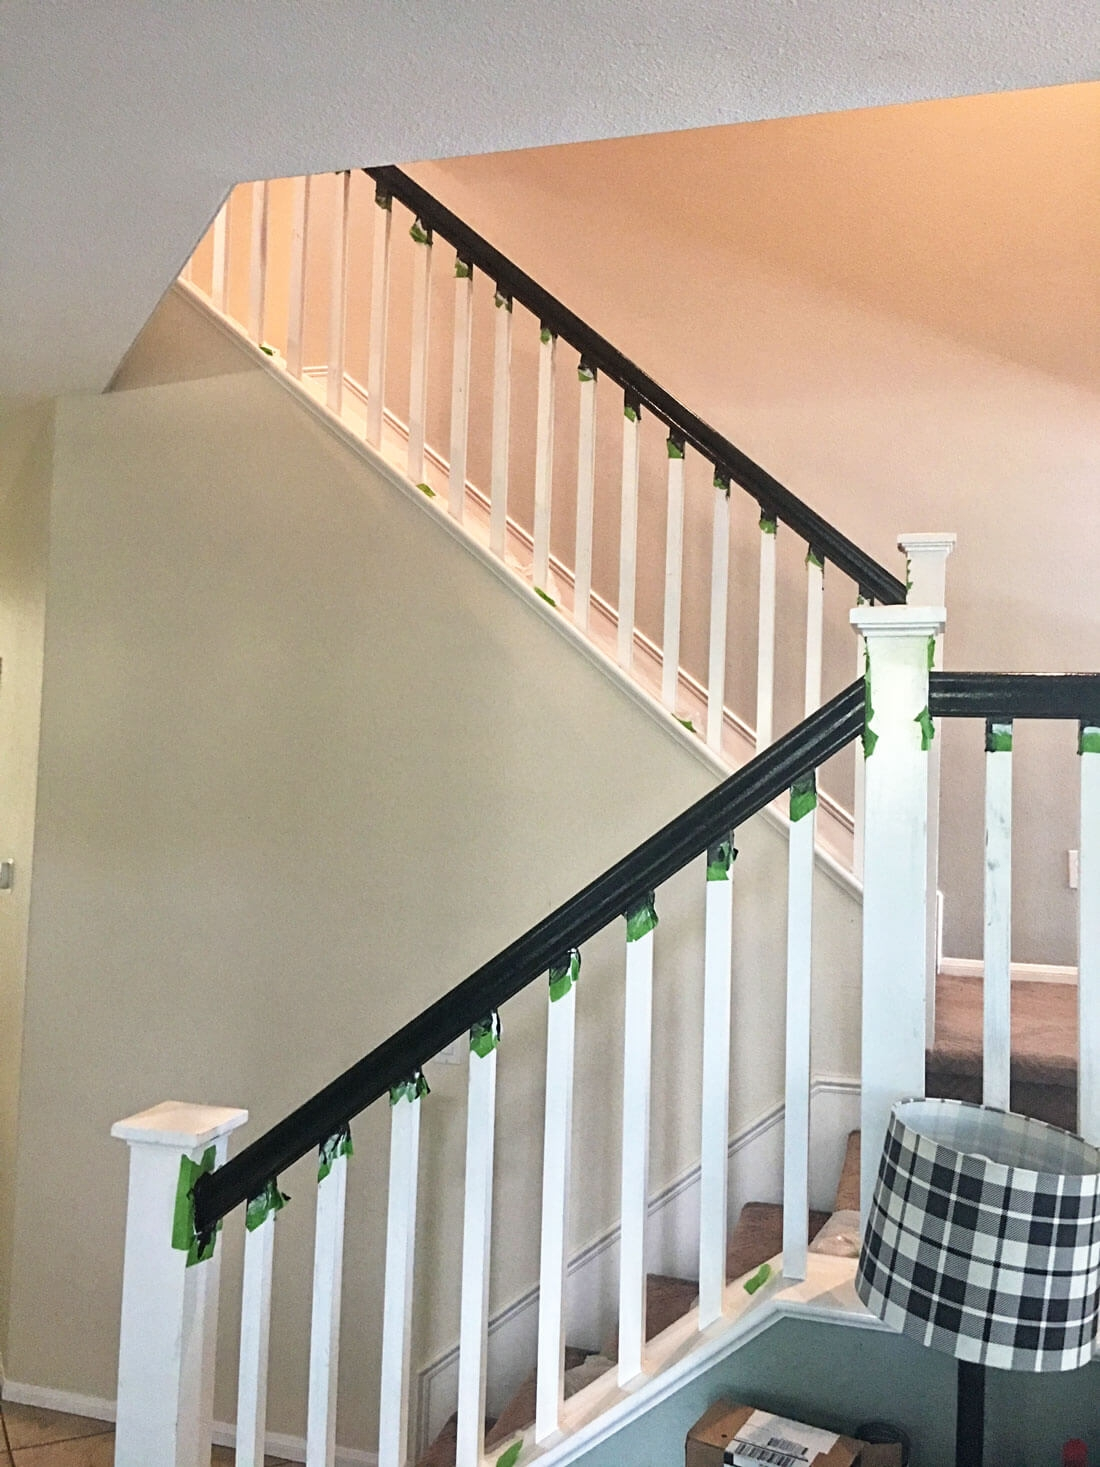 How To Paint Your Stair Railing And Banister Black From 30Daysblog | Black Banister White Spindles | Black Railing | Wainscoting | White Painted Riser | Benjamin Moore Stair Railing | Baluster Curved Stylish Overview Stair